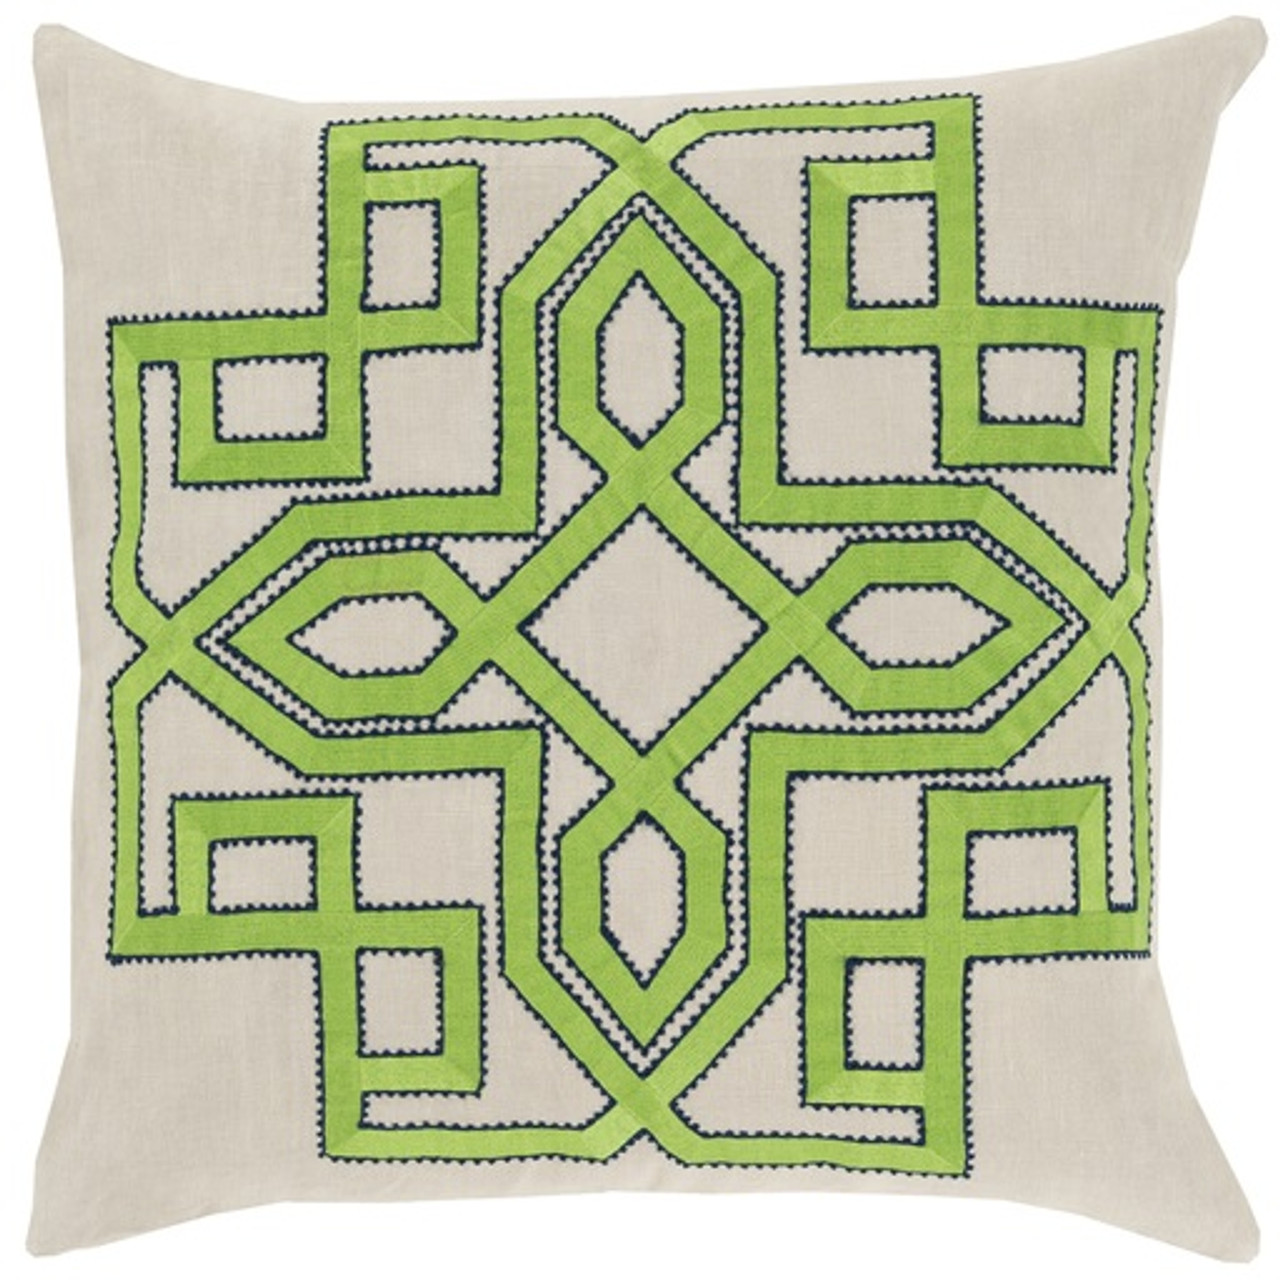 20 Lavish Labyrinth Lime Green Navy Blue Cream Decorative Square Throw Pillow Down Filler Christmas Central